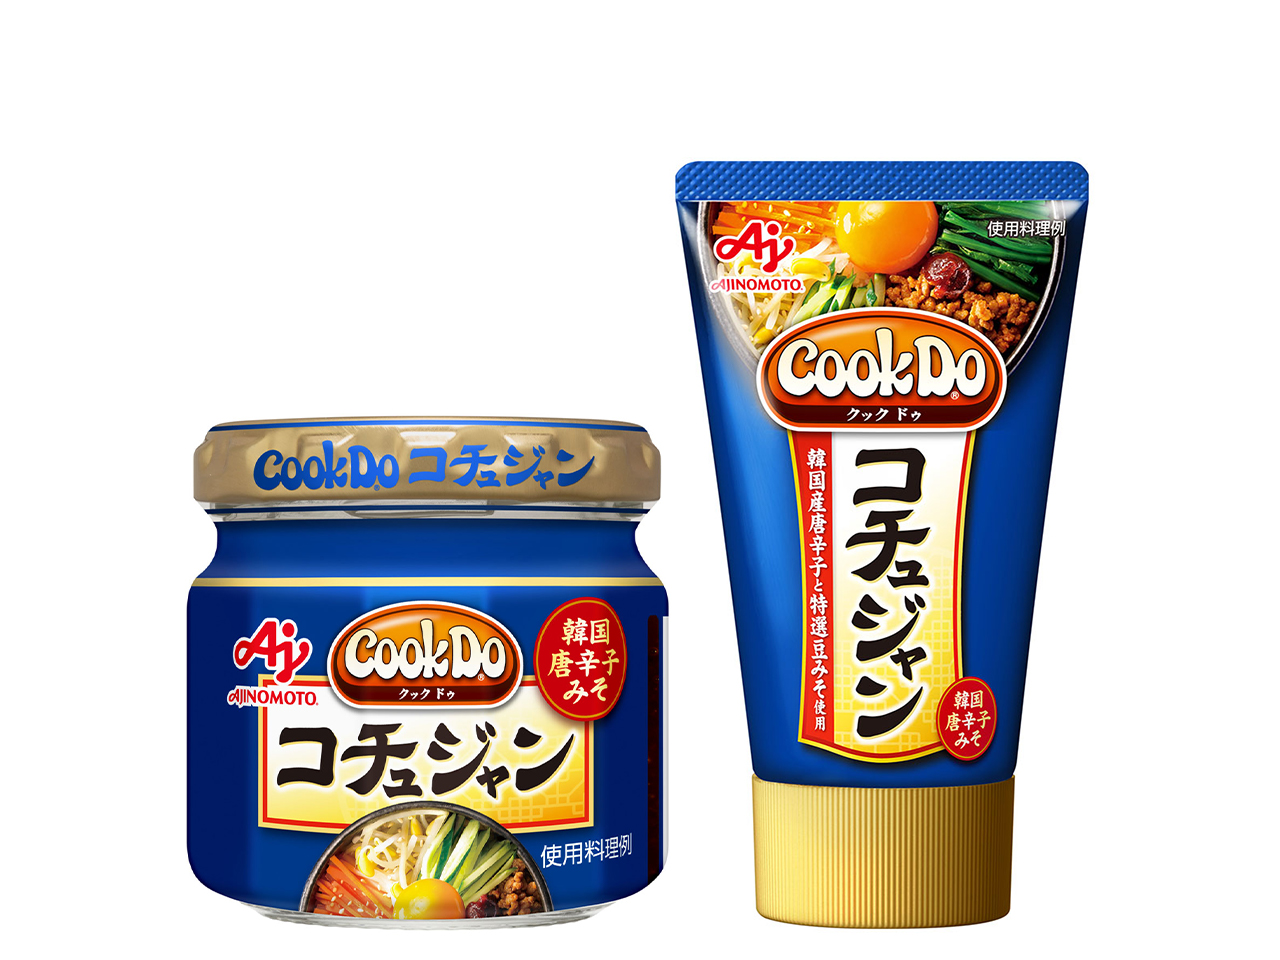 「Cook Do」 (韓国醤調味料)コチュジャン